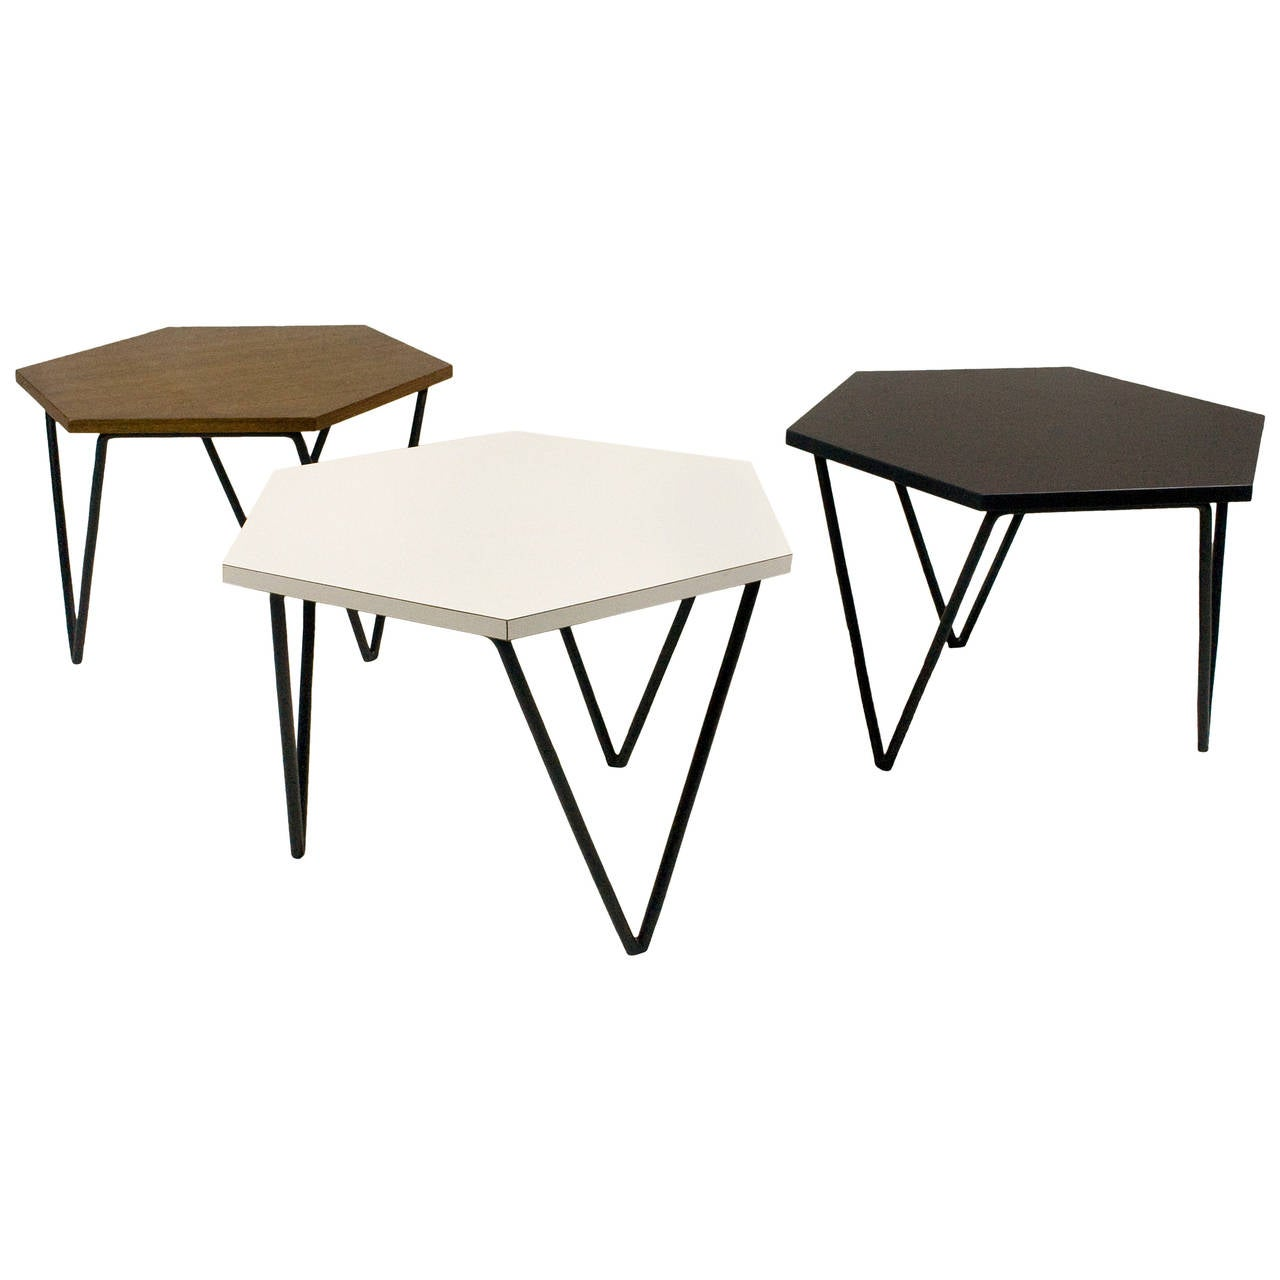 Series Of Three Gio Ponti Modular Coffee Tables Circa 1950 Italy At 1stdibs